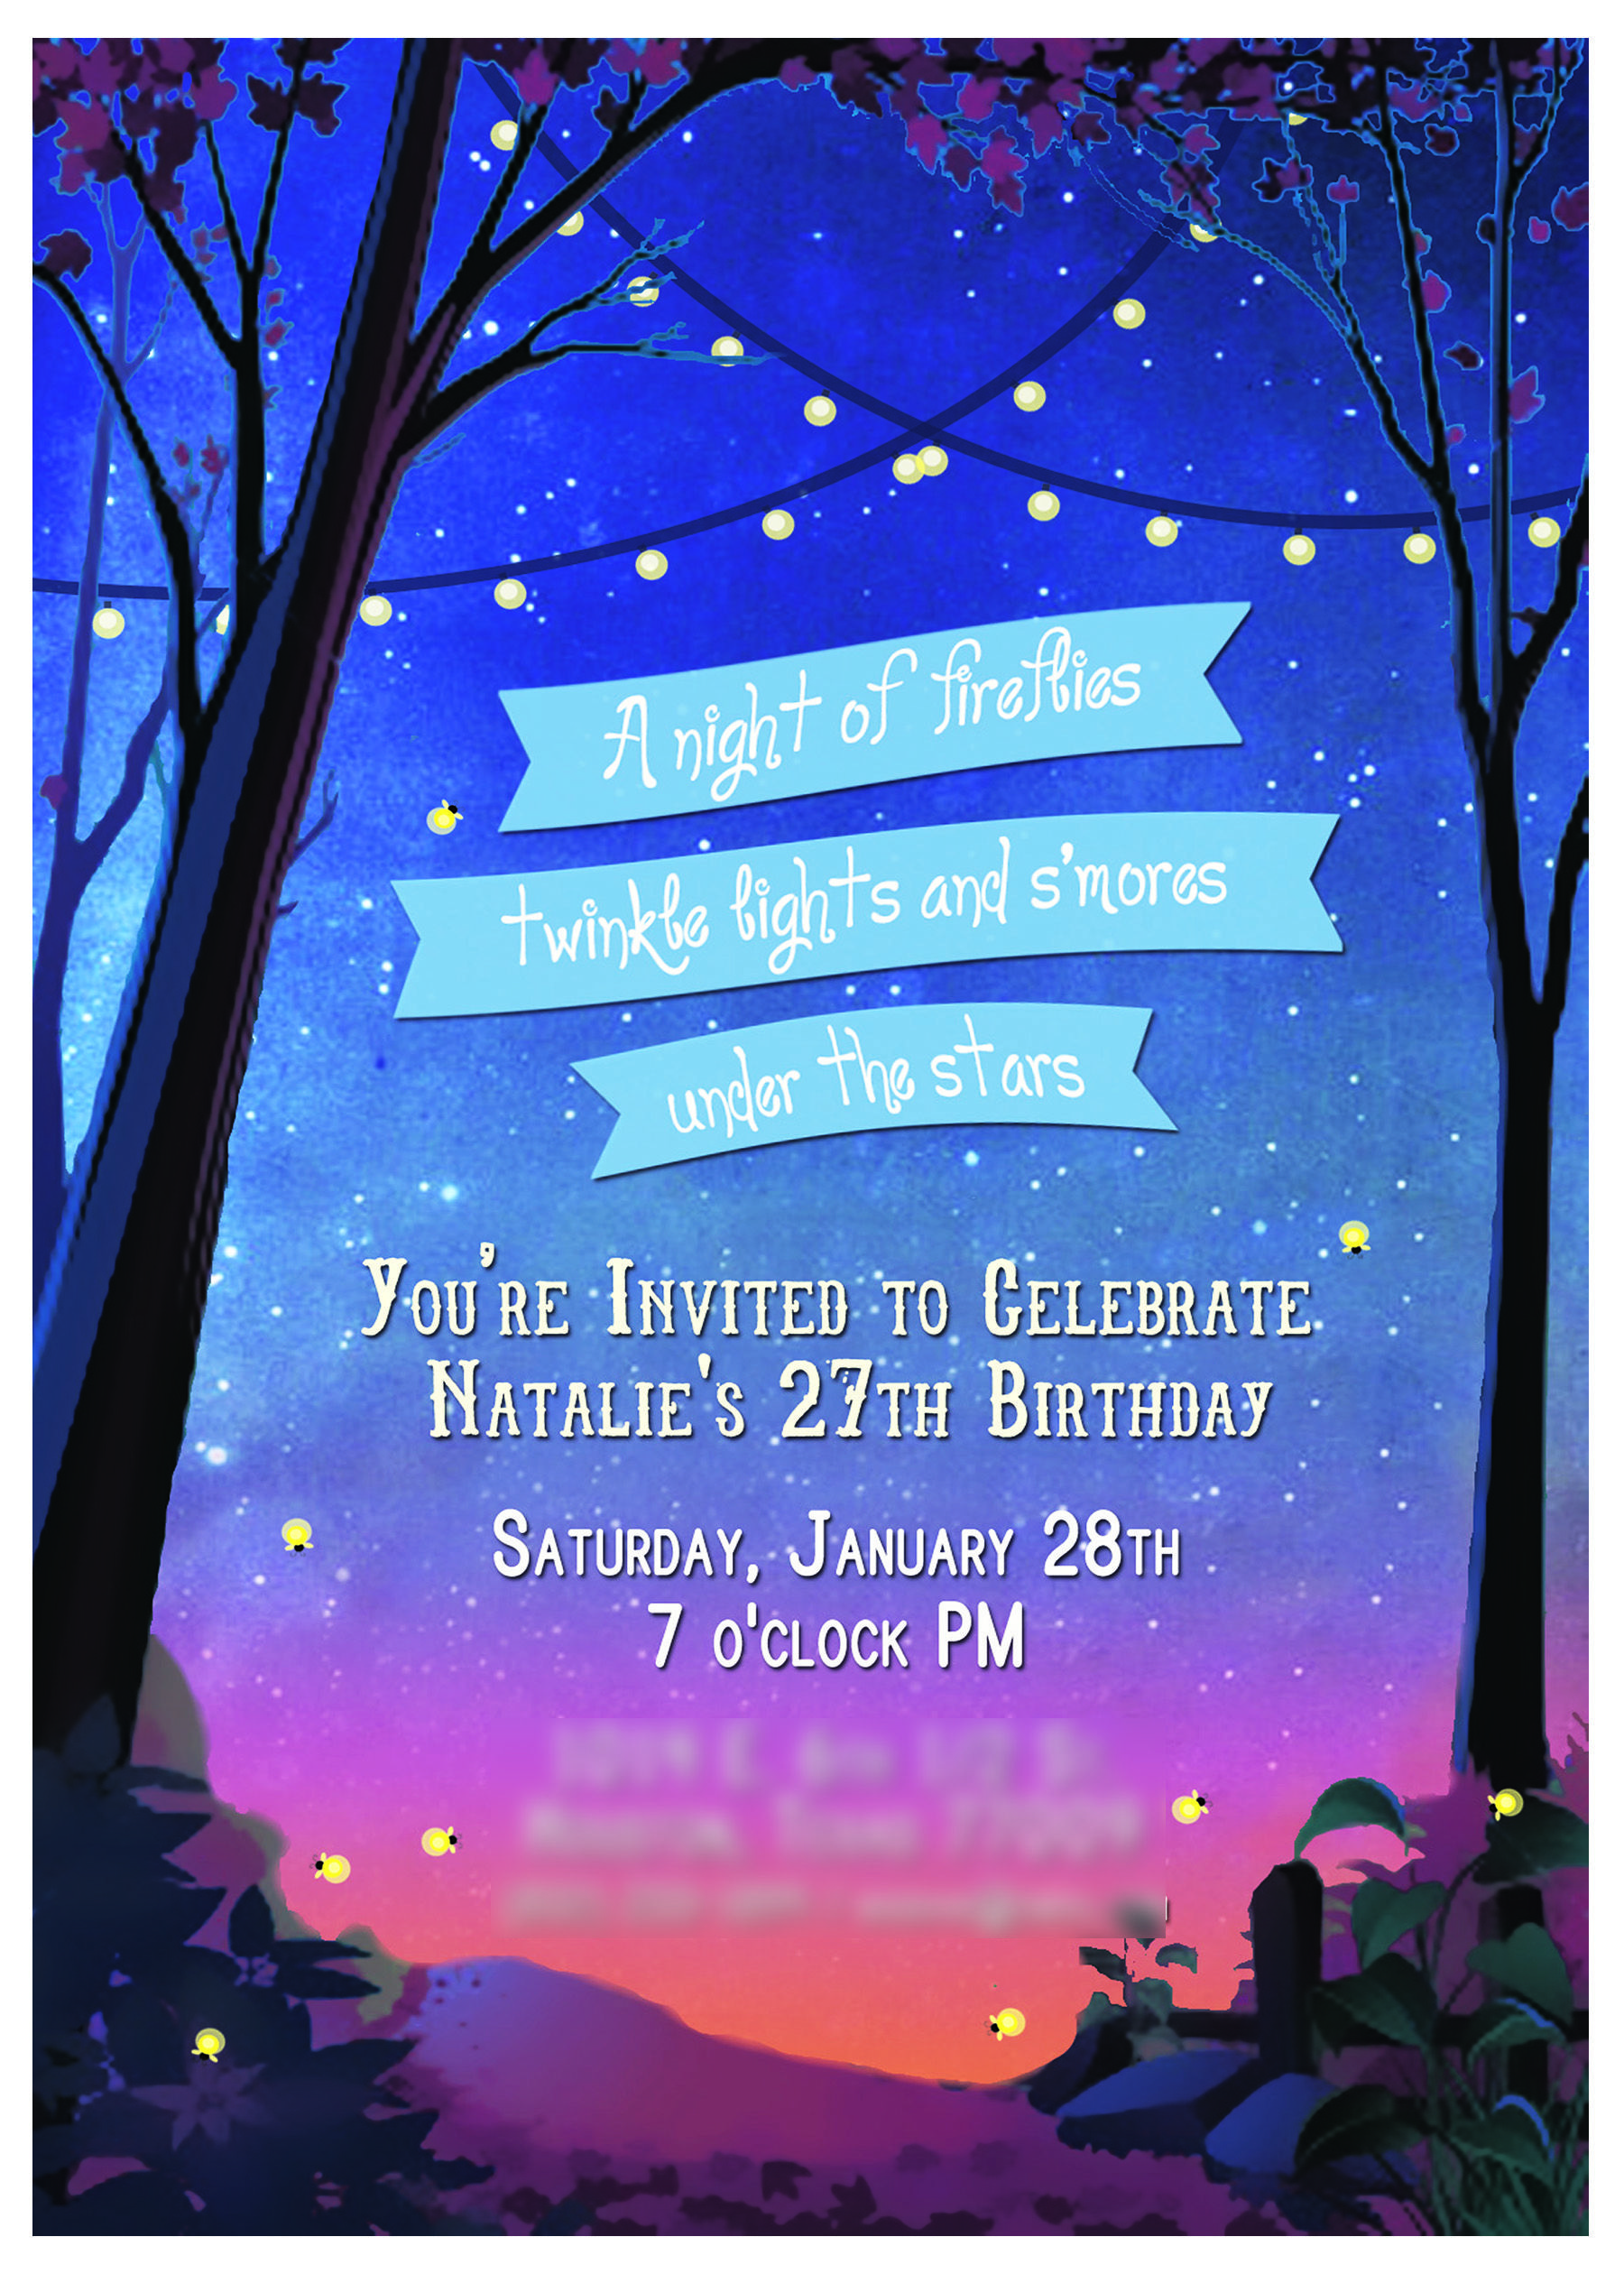 Invitation... A night of fireflies, twinkle lights, and s ...